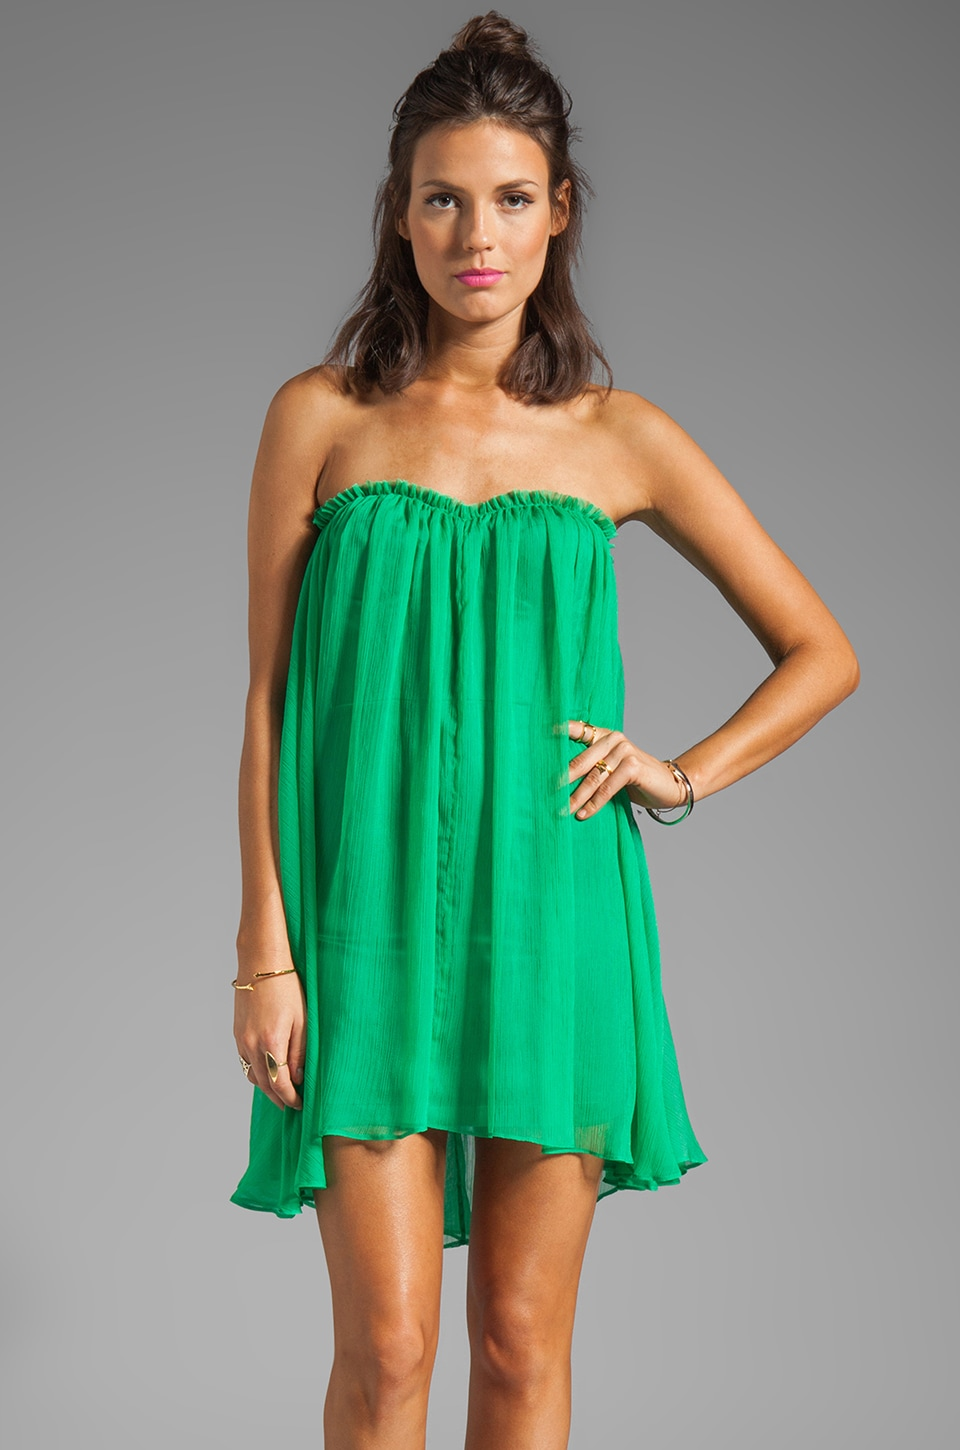 BLAQUE LABEL Strapless Mini Dress in Green